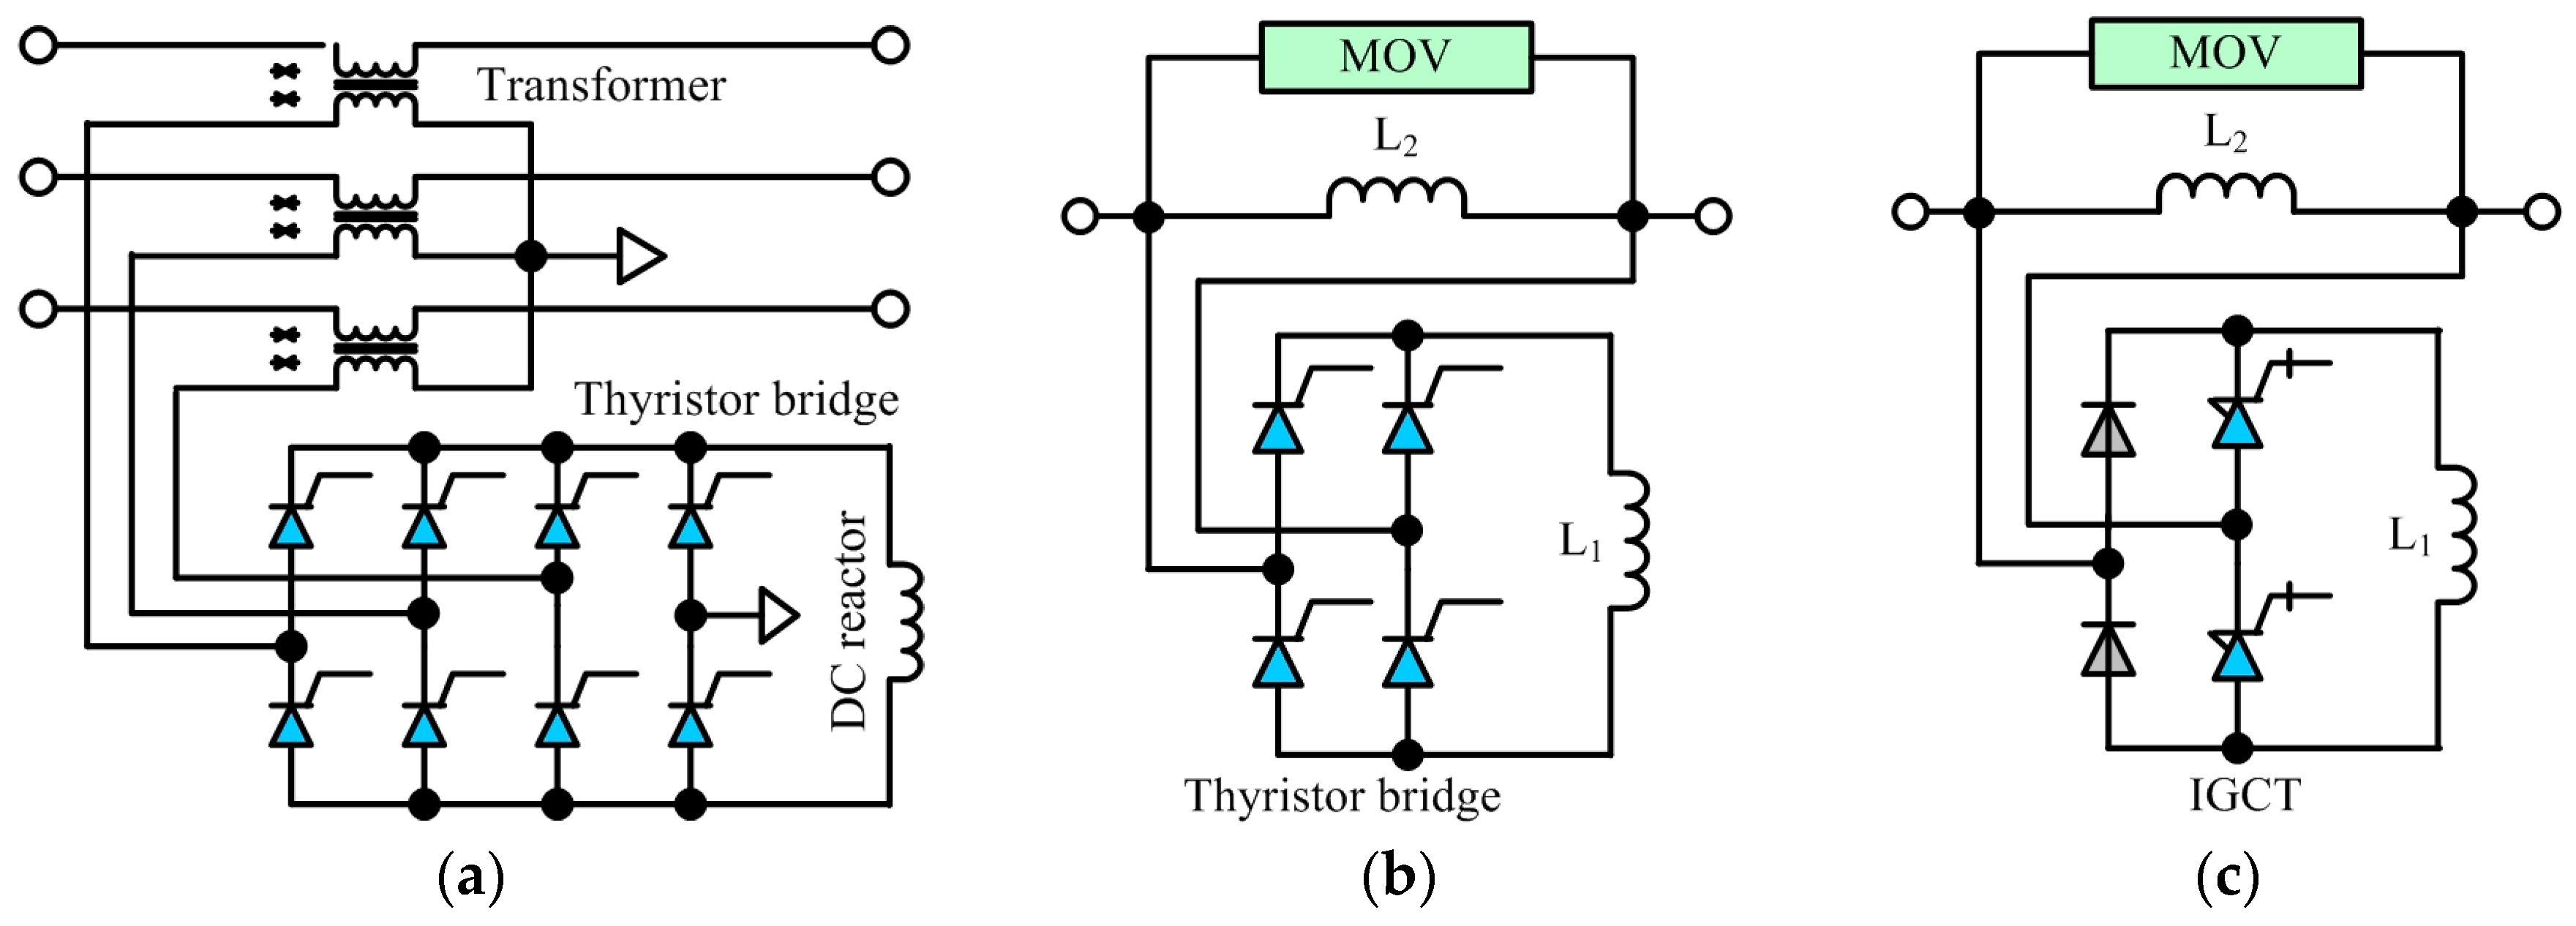 Energies Free Full Text Semiconductor Devices In Solid State Isolation Transformer Diagram No